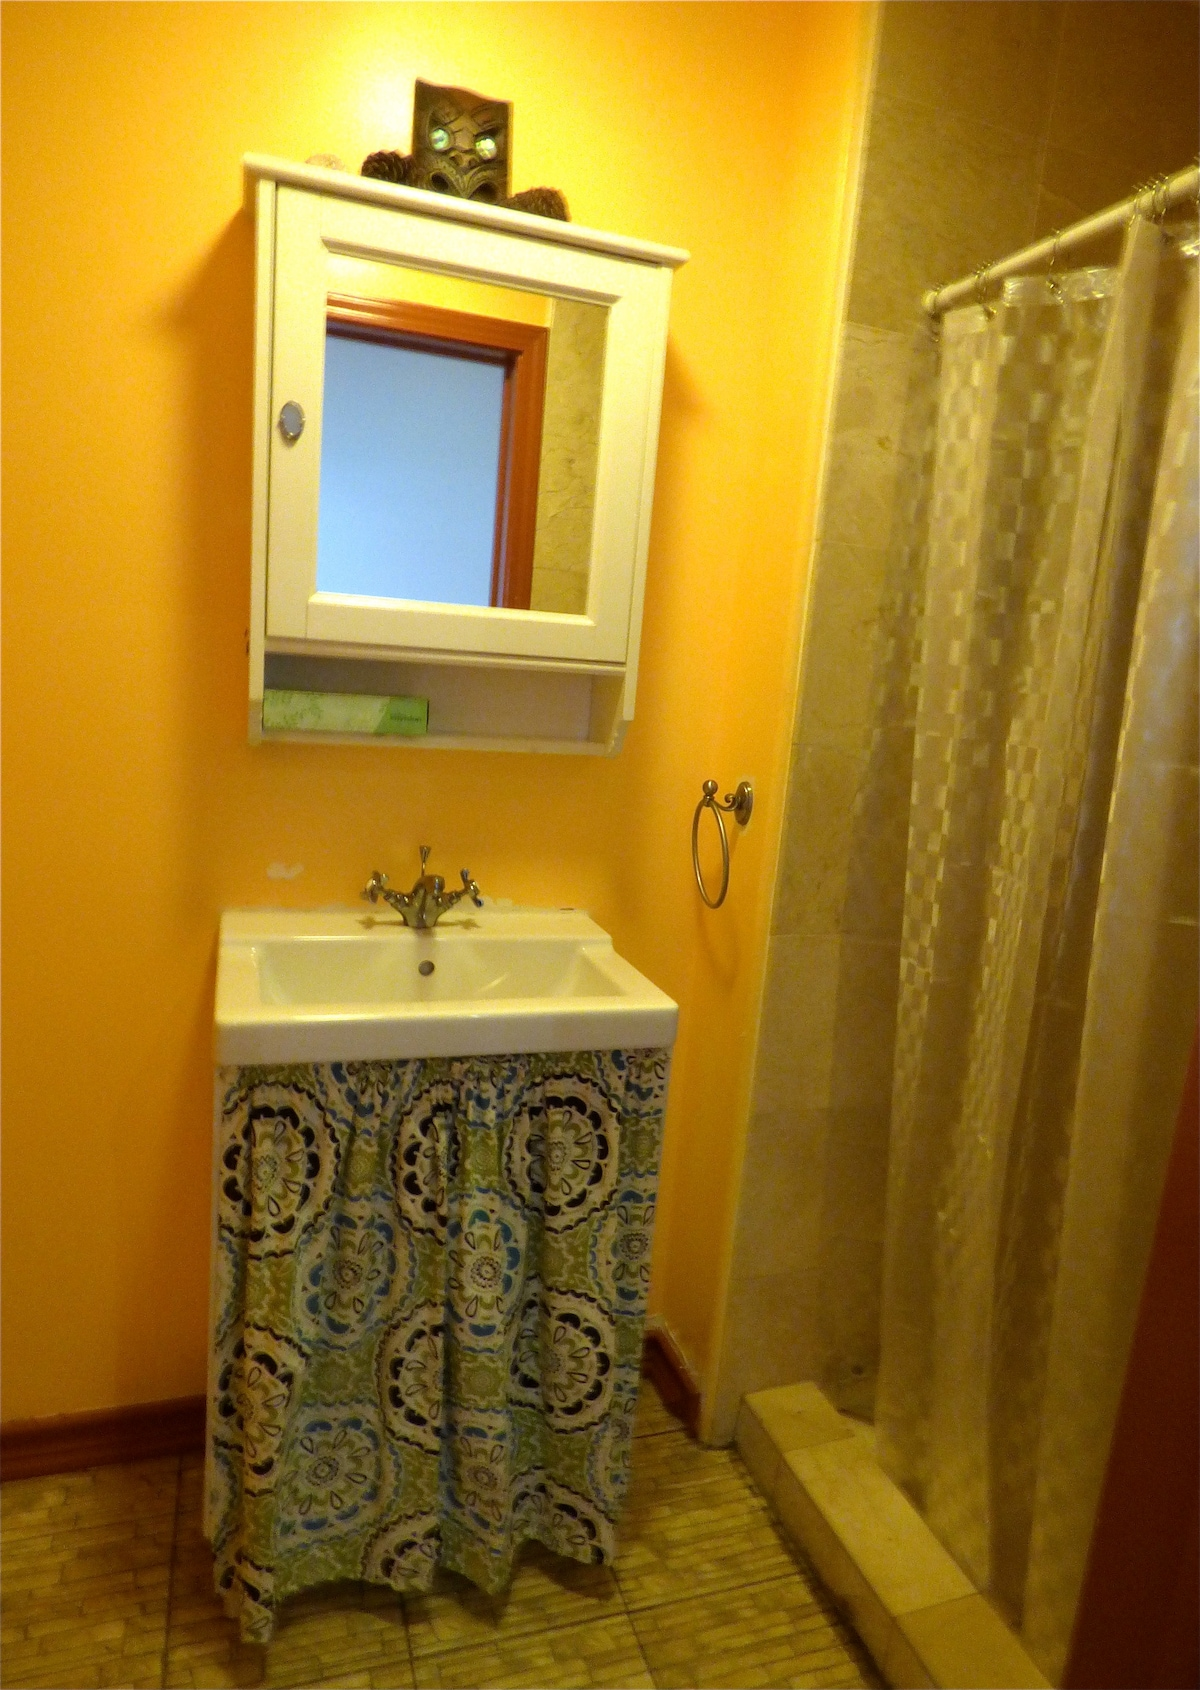 Second bathroom. Shower stall, sink, and toilet.